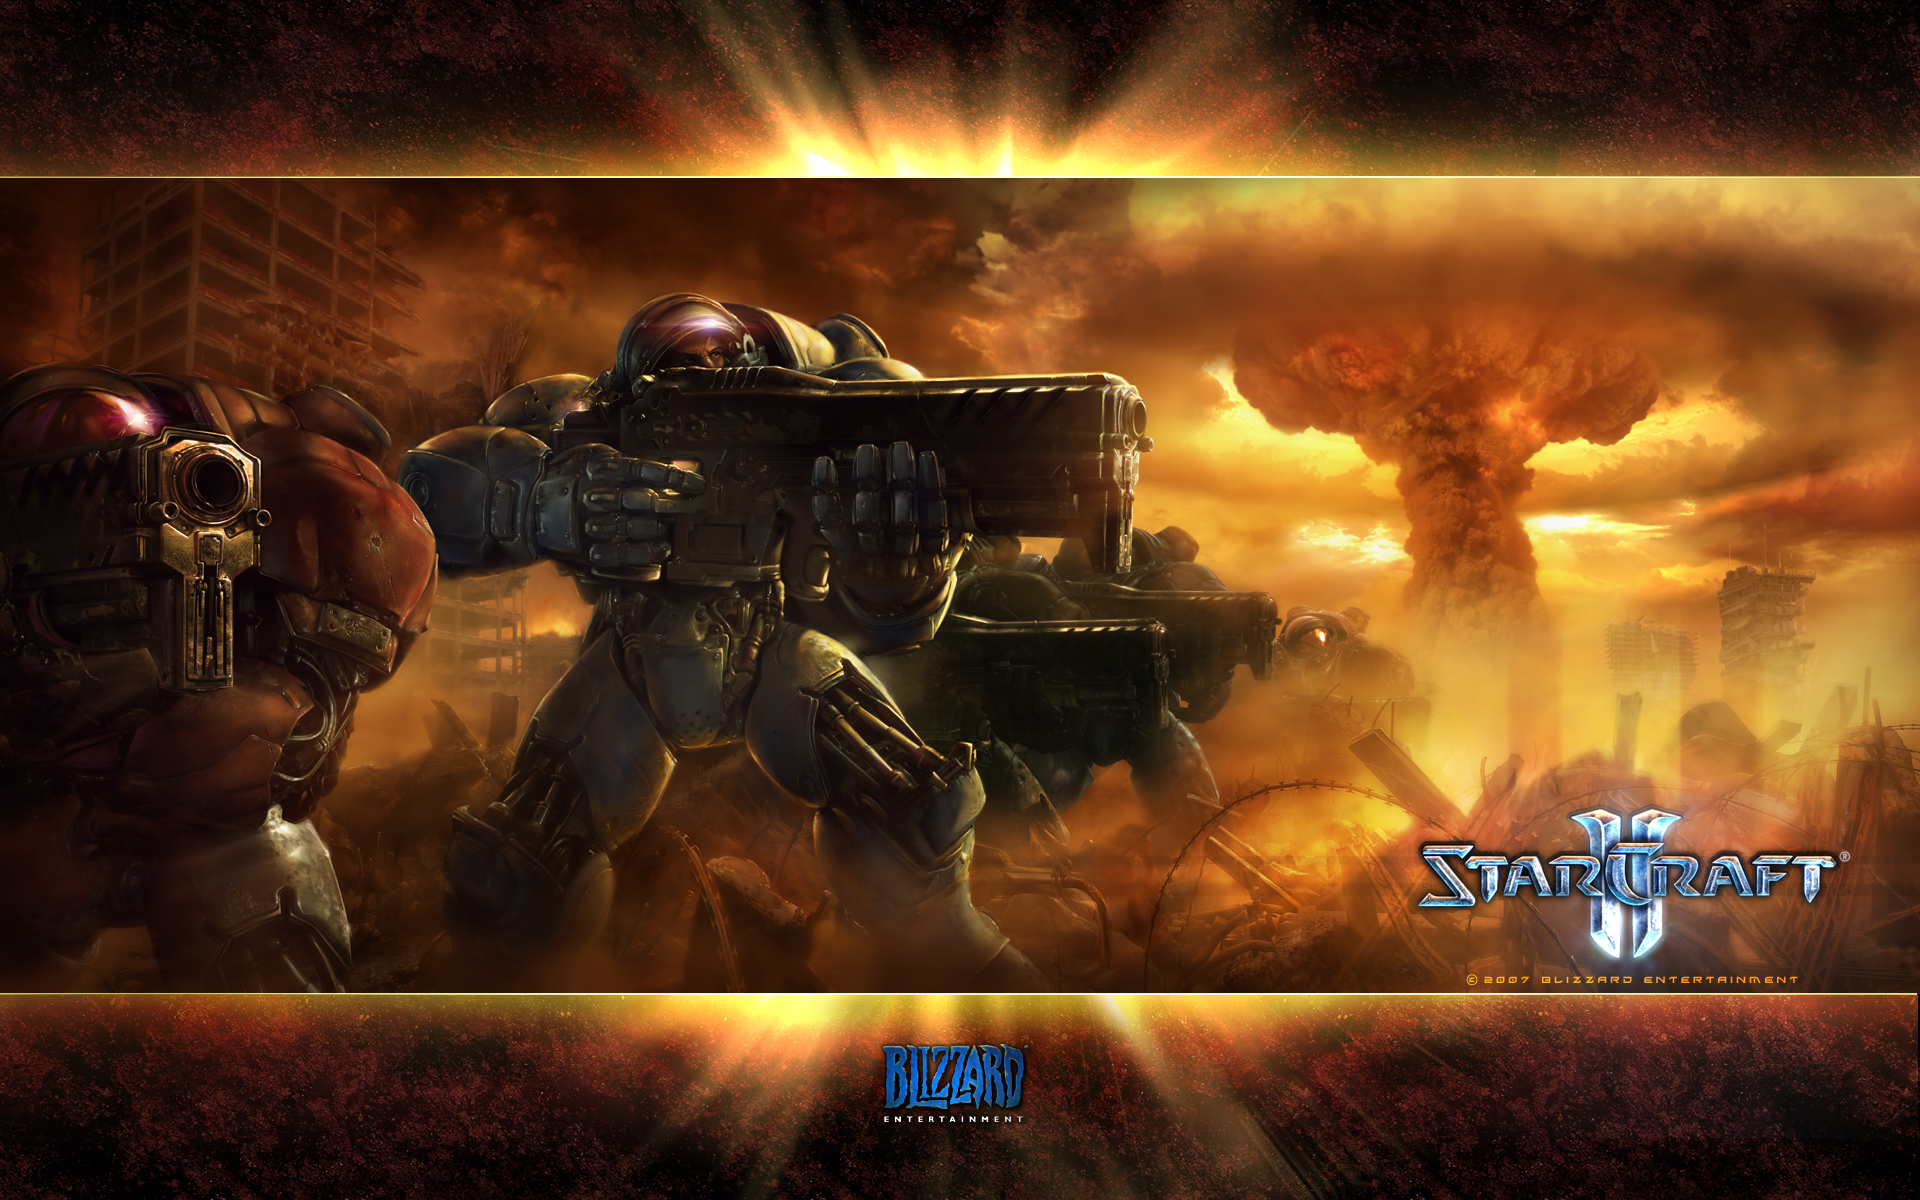 Wallpaper Jeux video StarCraft 2 Frappe nucleaire